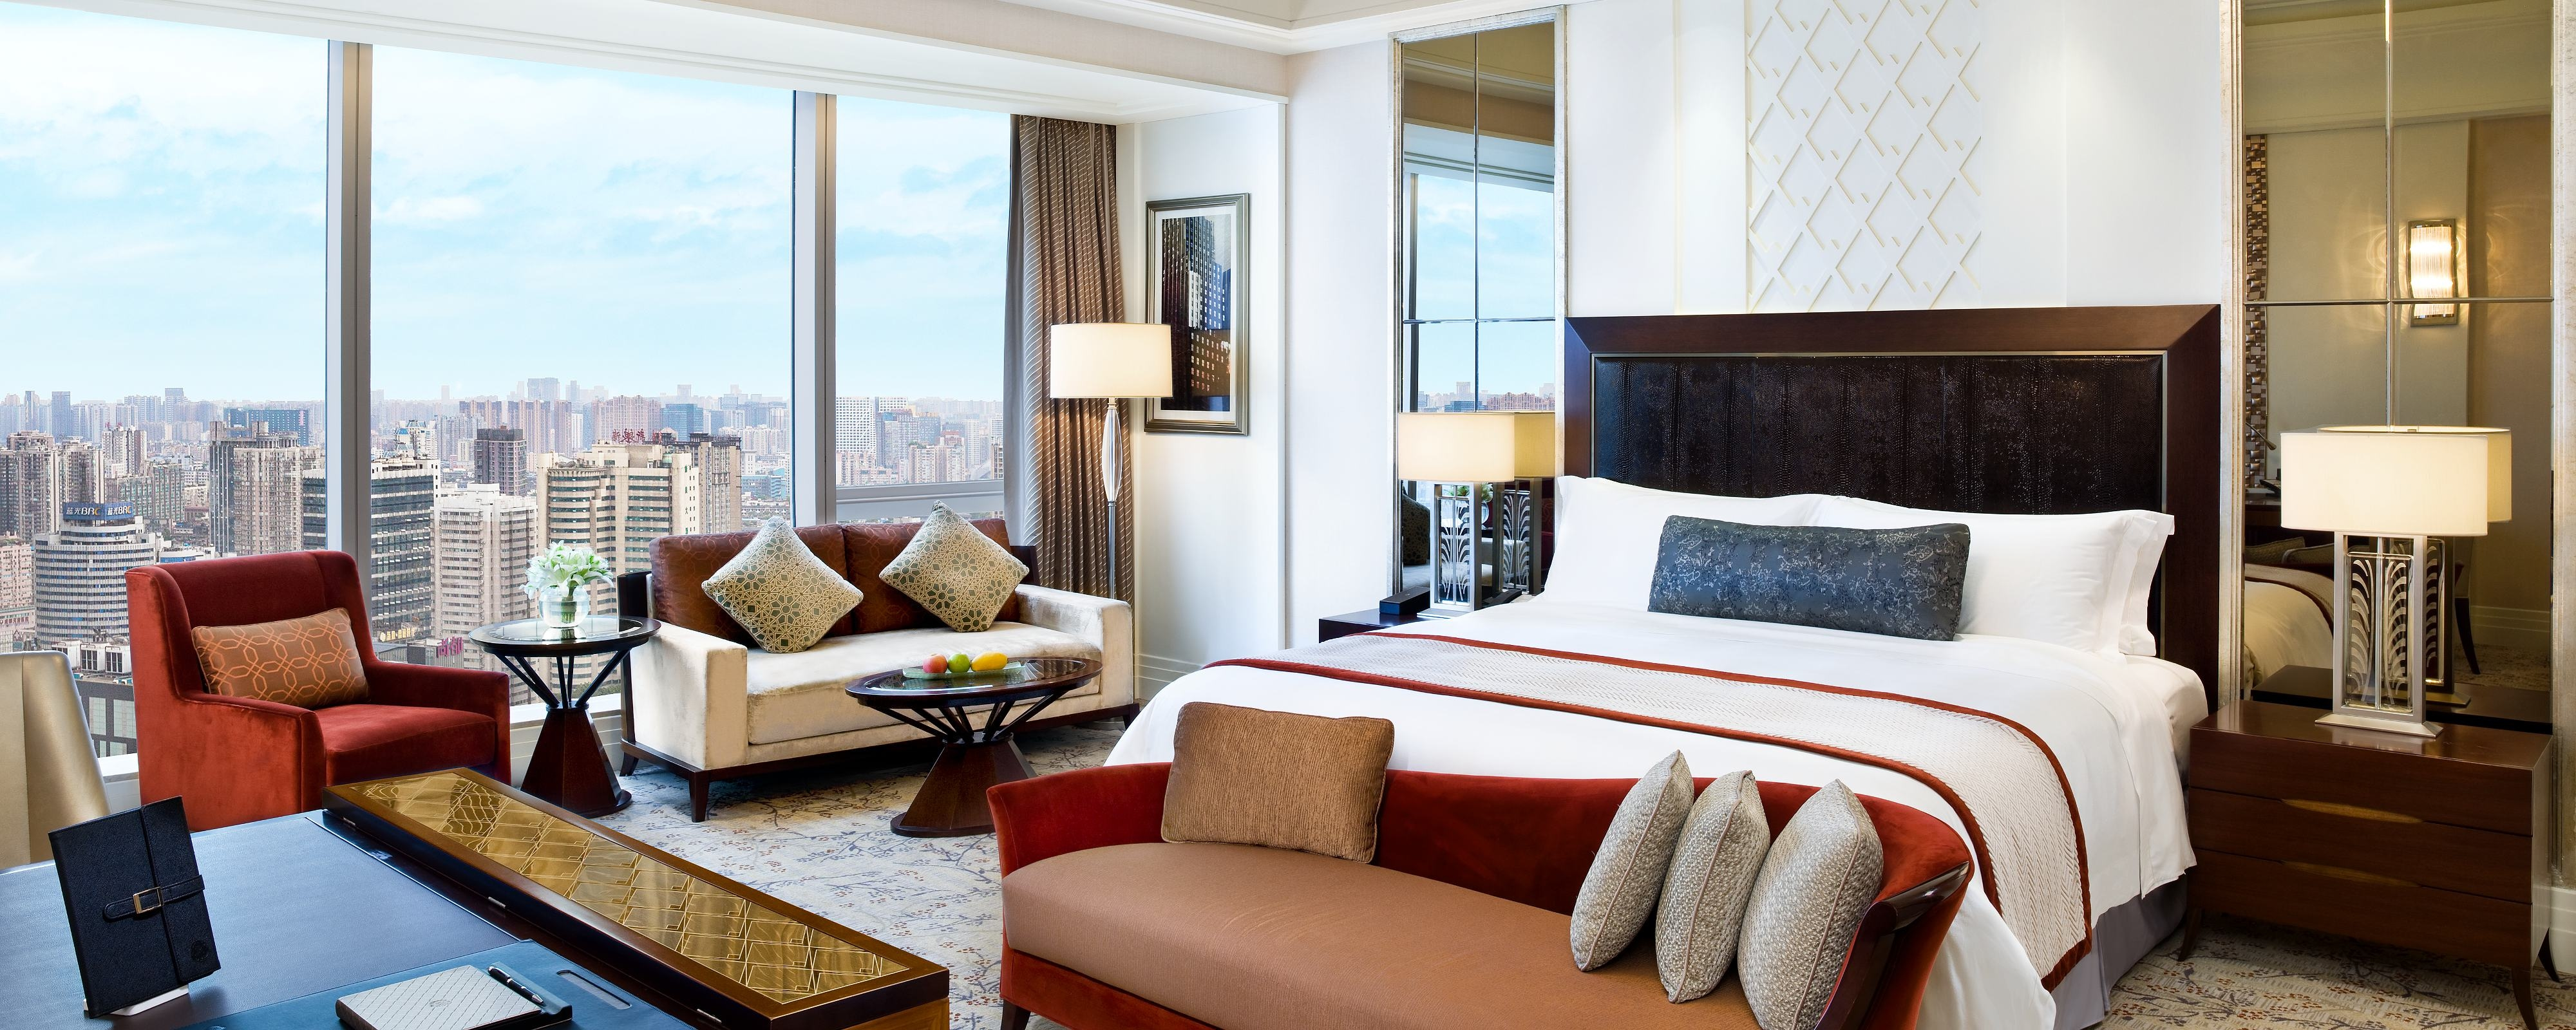 Grand Deluxe Room with City View